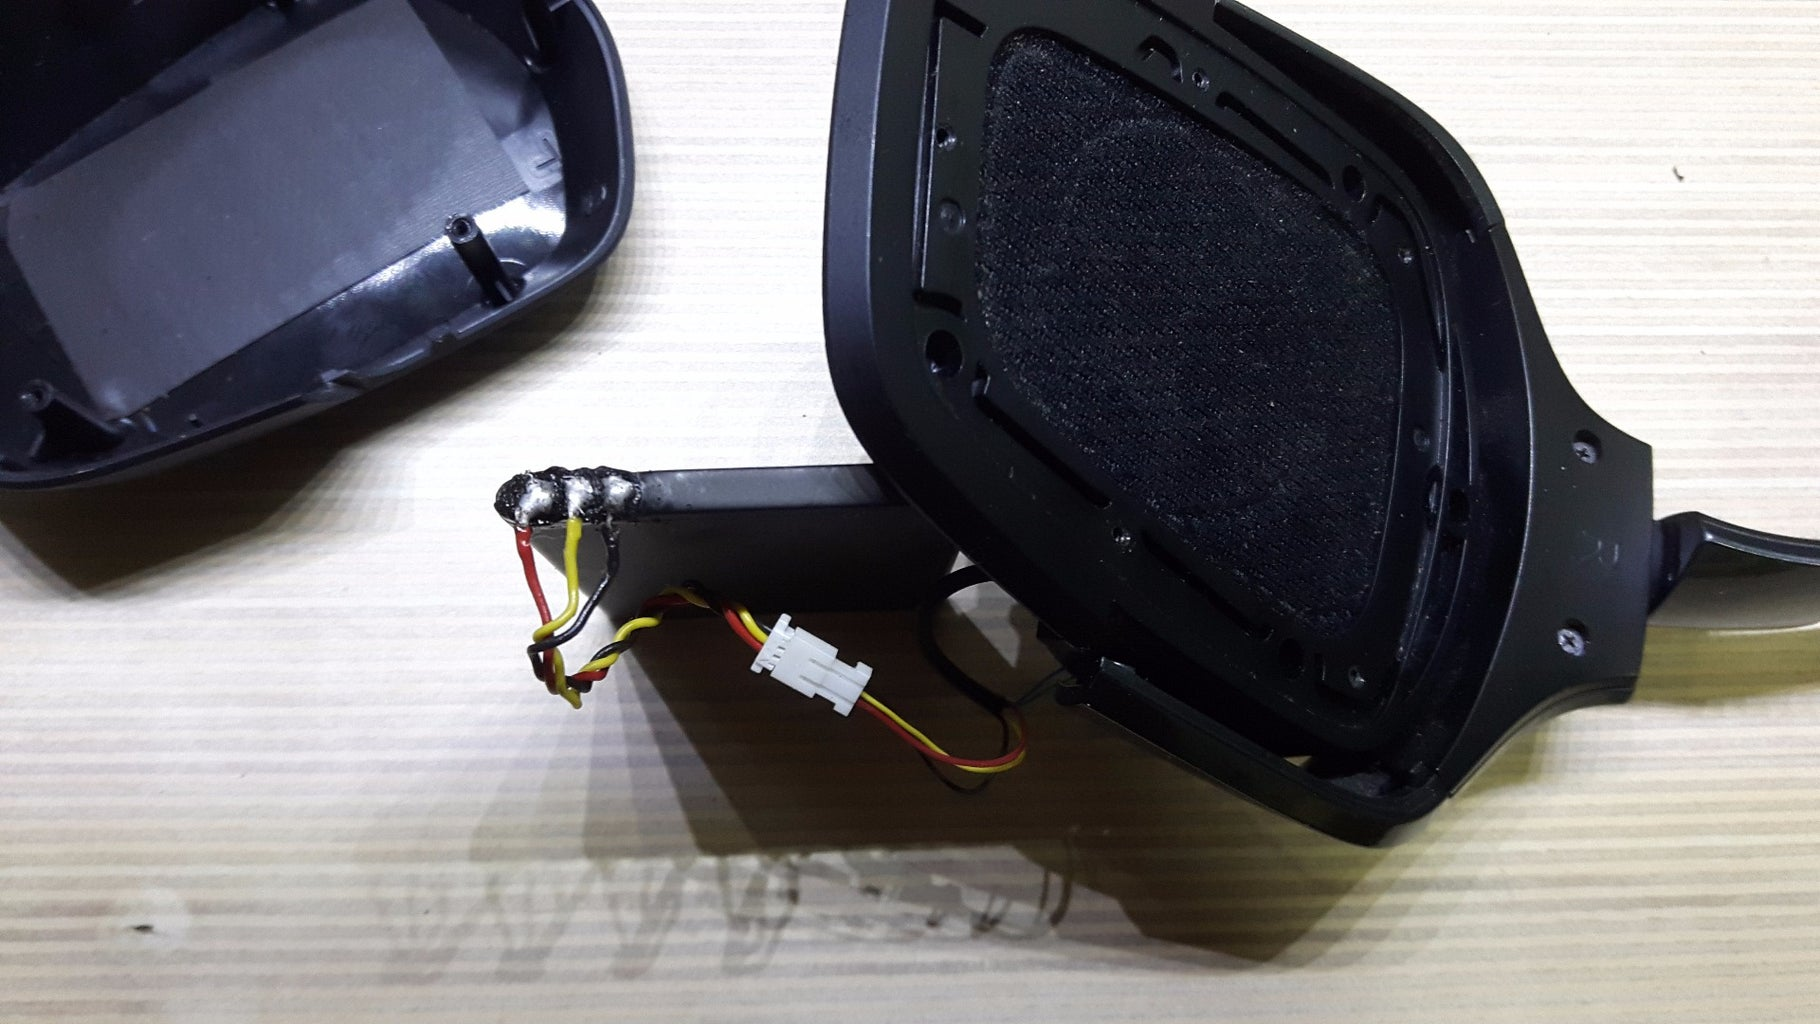 Find a 3.7v Battery Lying Around, and Solder the Wires on the Contacts.